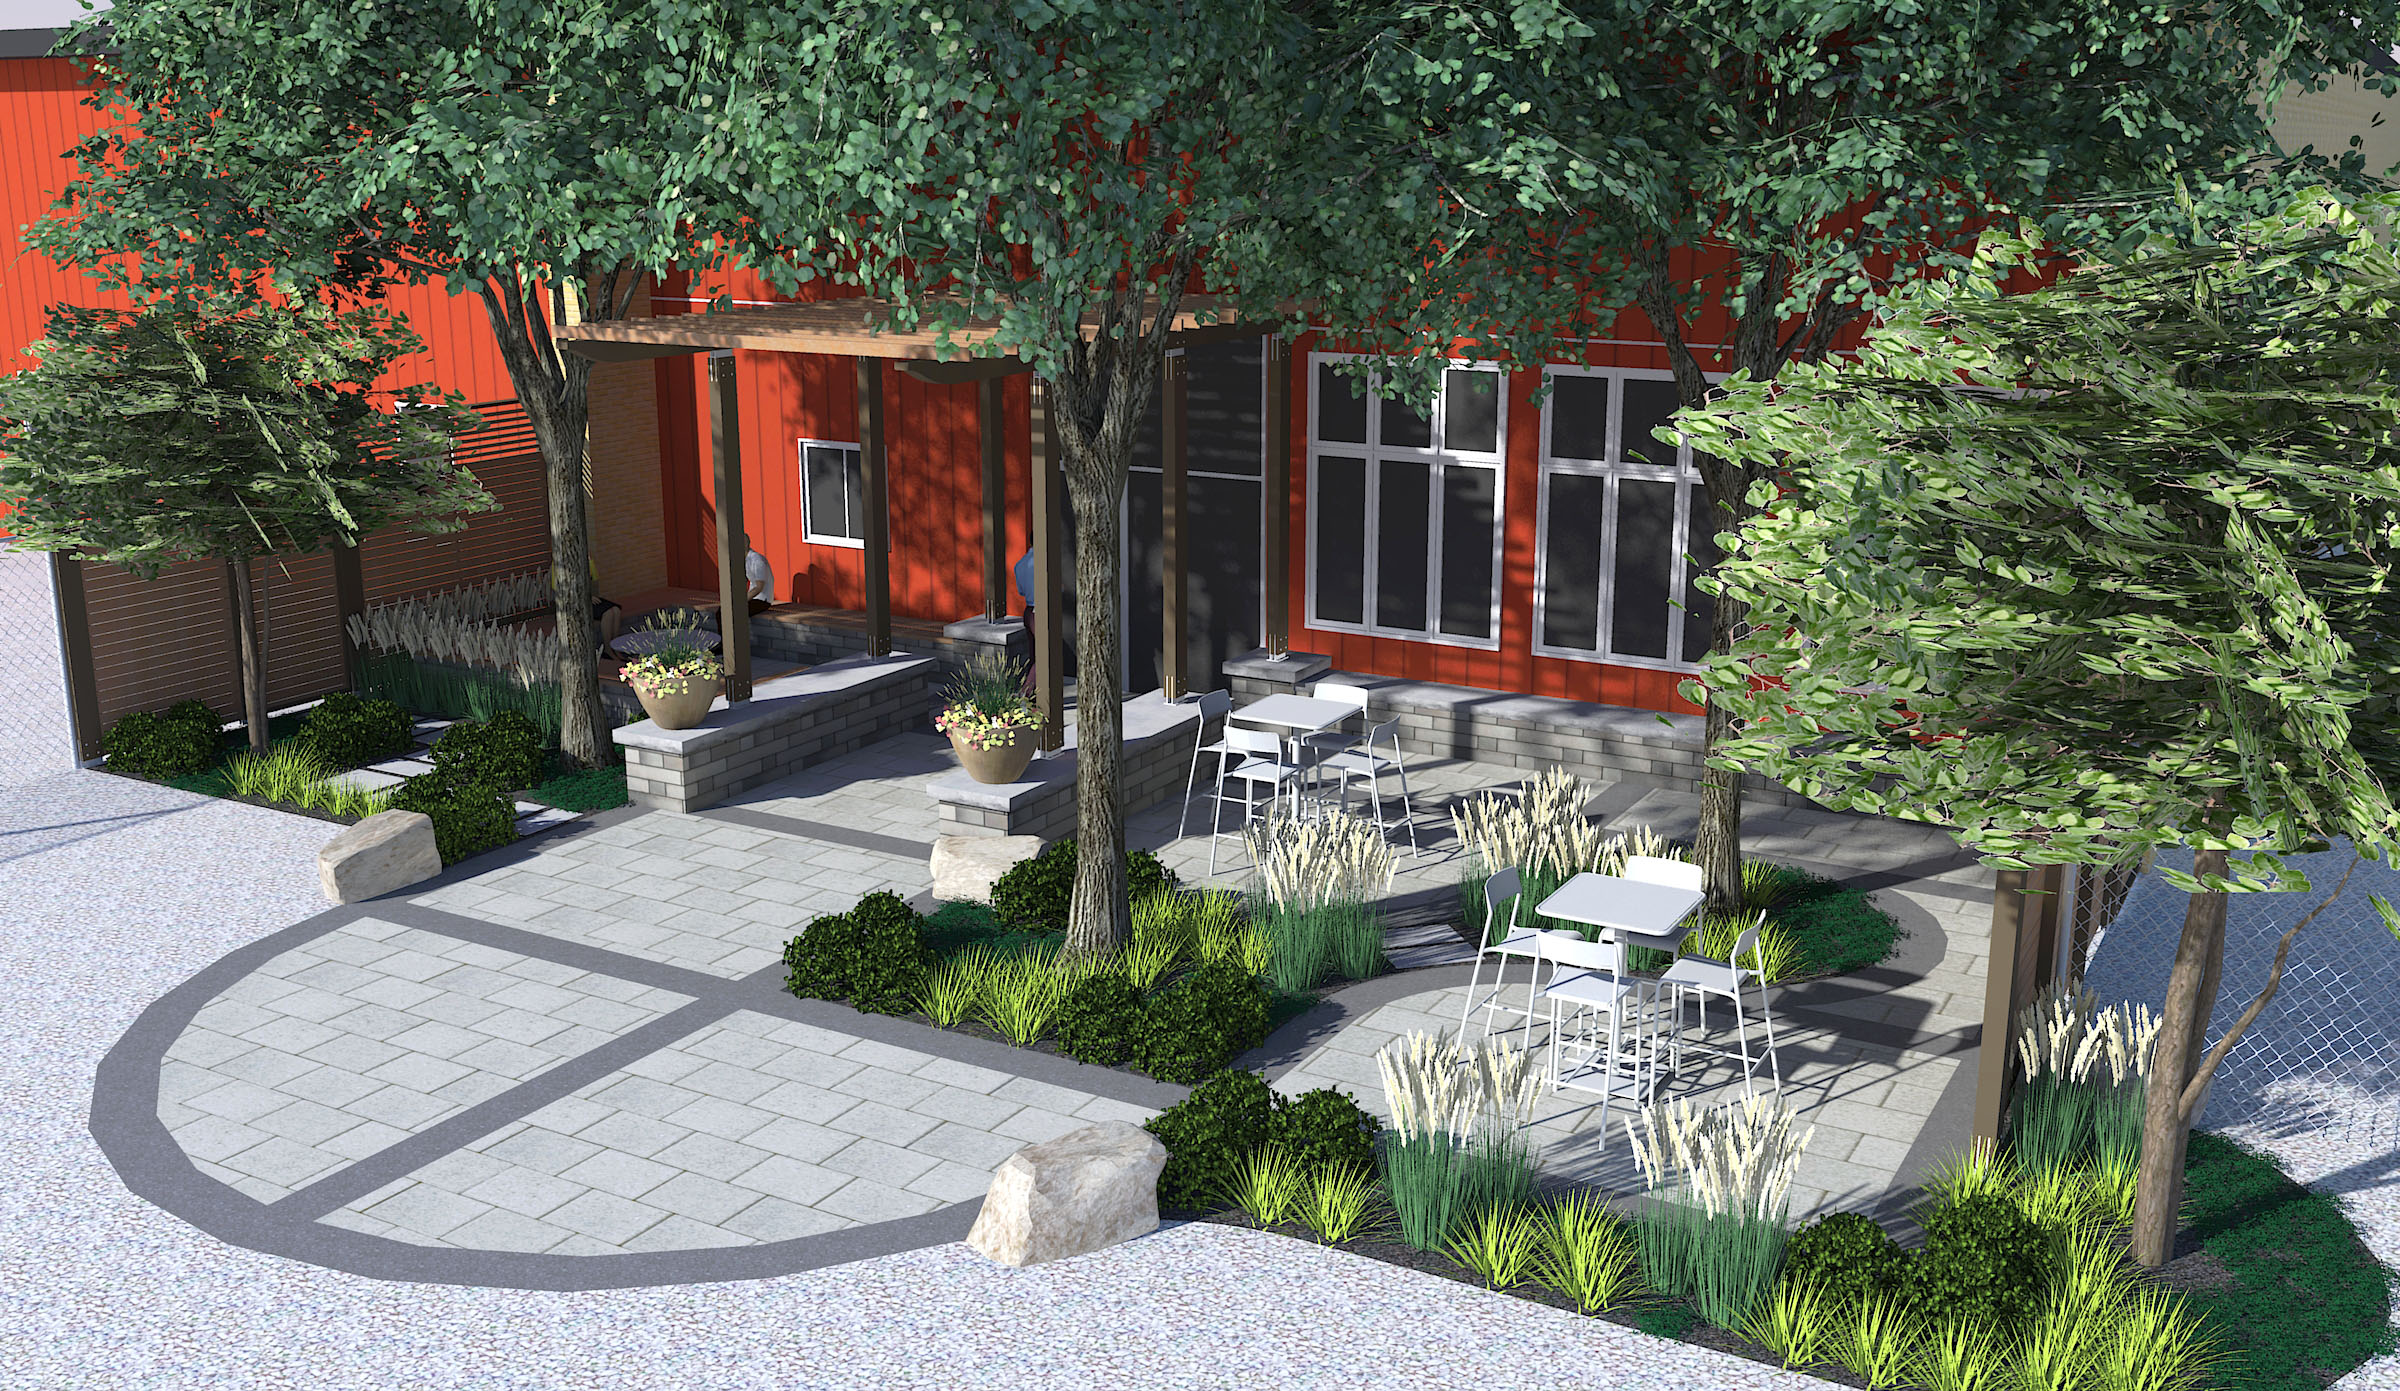 Riverview Design Solutions_Commercial Landscape Design Concept_Iroquois Ontario.jpg